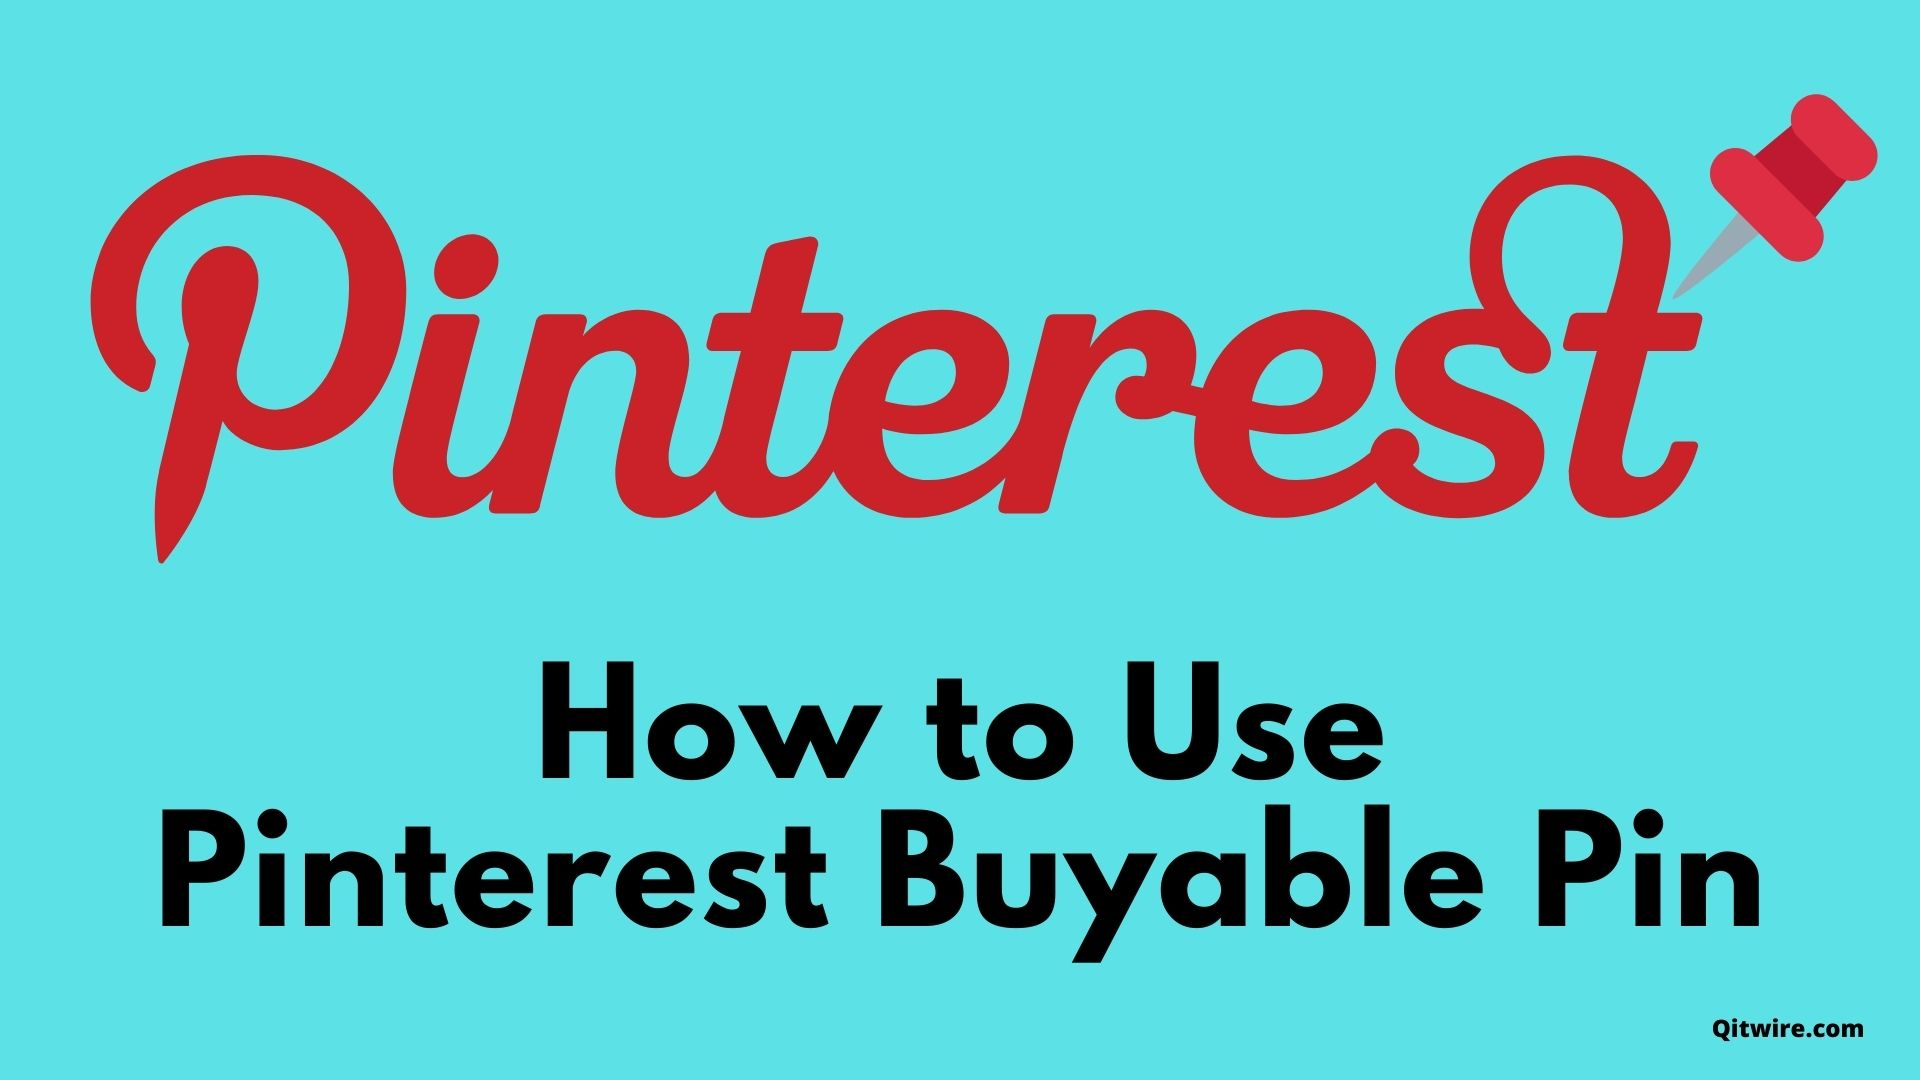 How to Use Buyable Pins on Pinterest [Pinterest Business]